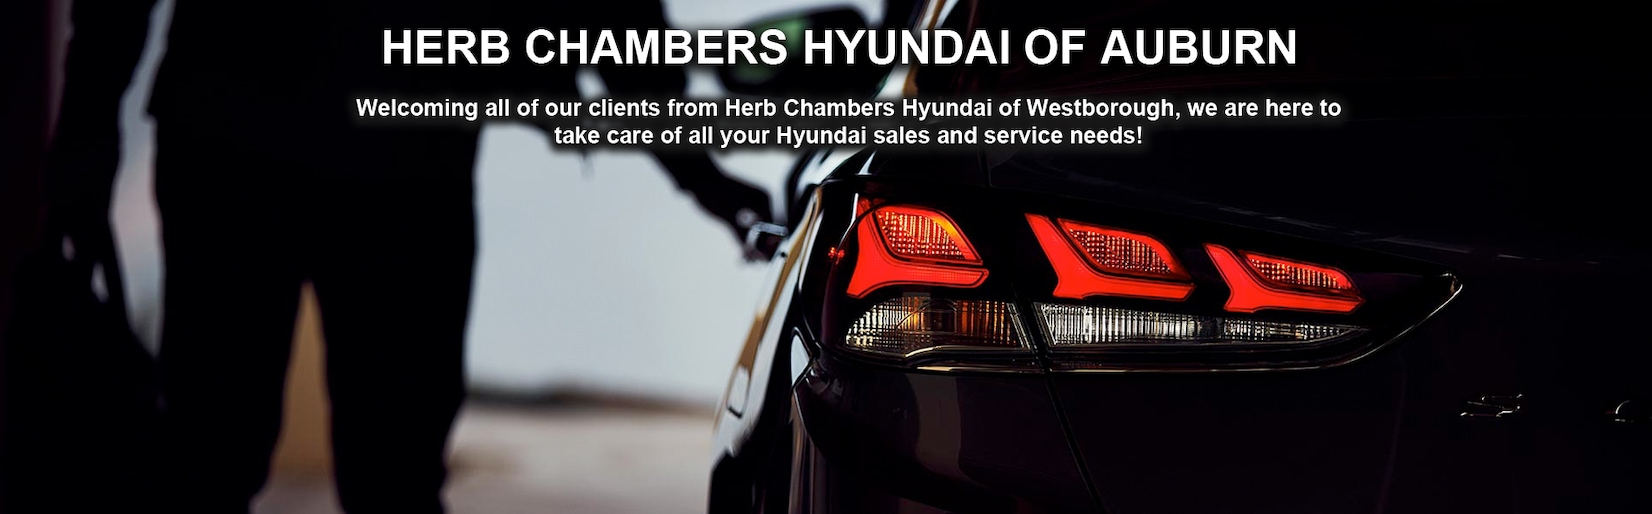 ma hyundai in htm new dealers dealership owners northampton country